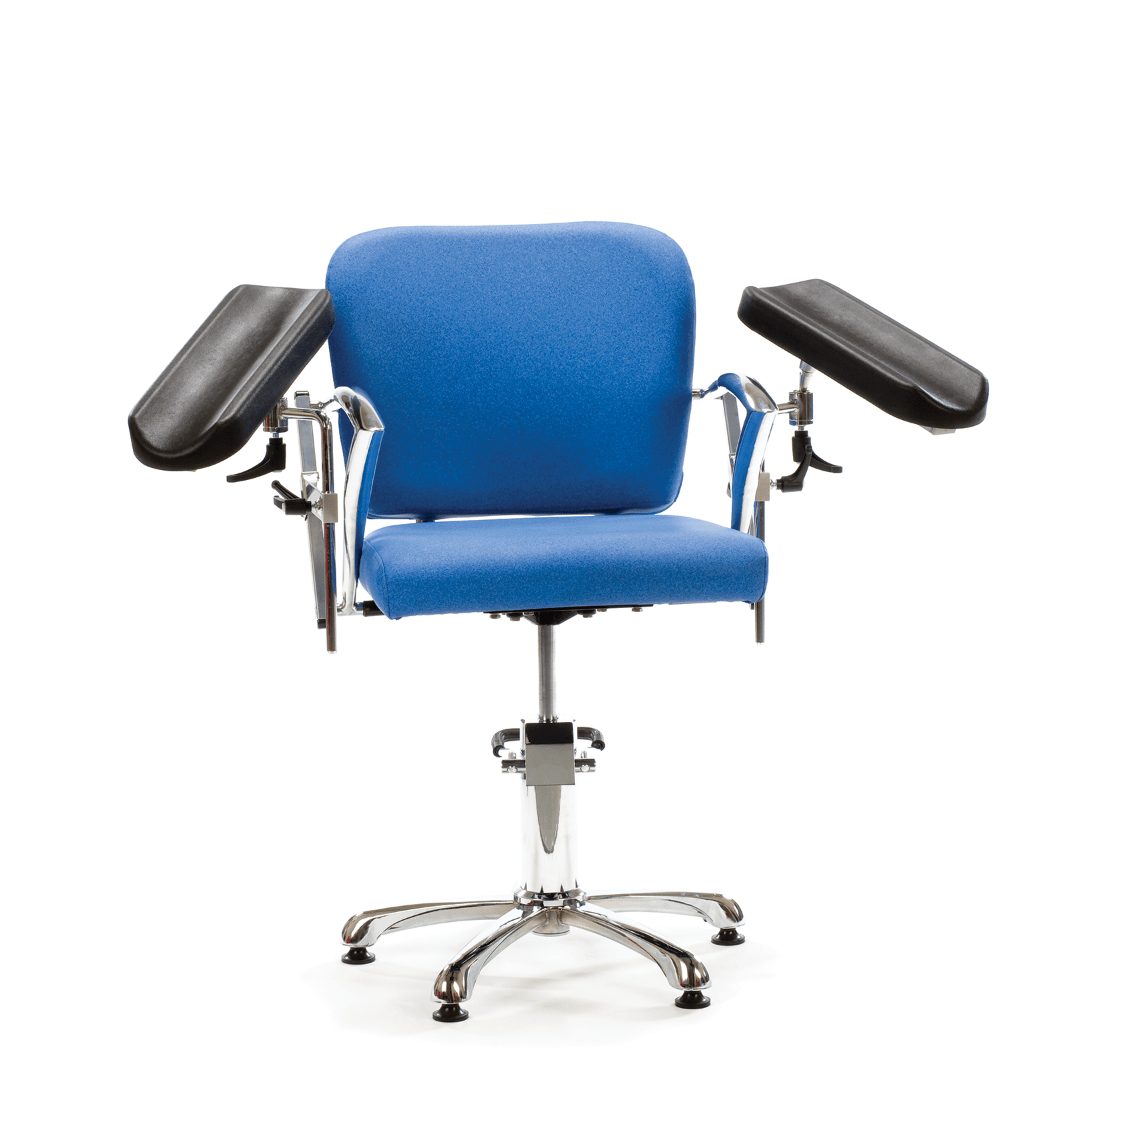 Phlebotomy Chairs Hydraulic Phlebotomy Chair Seers Medical The Uk 39s